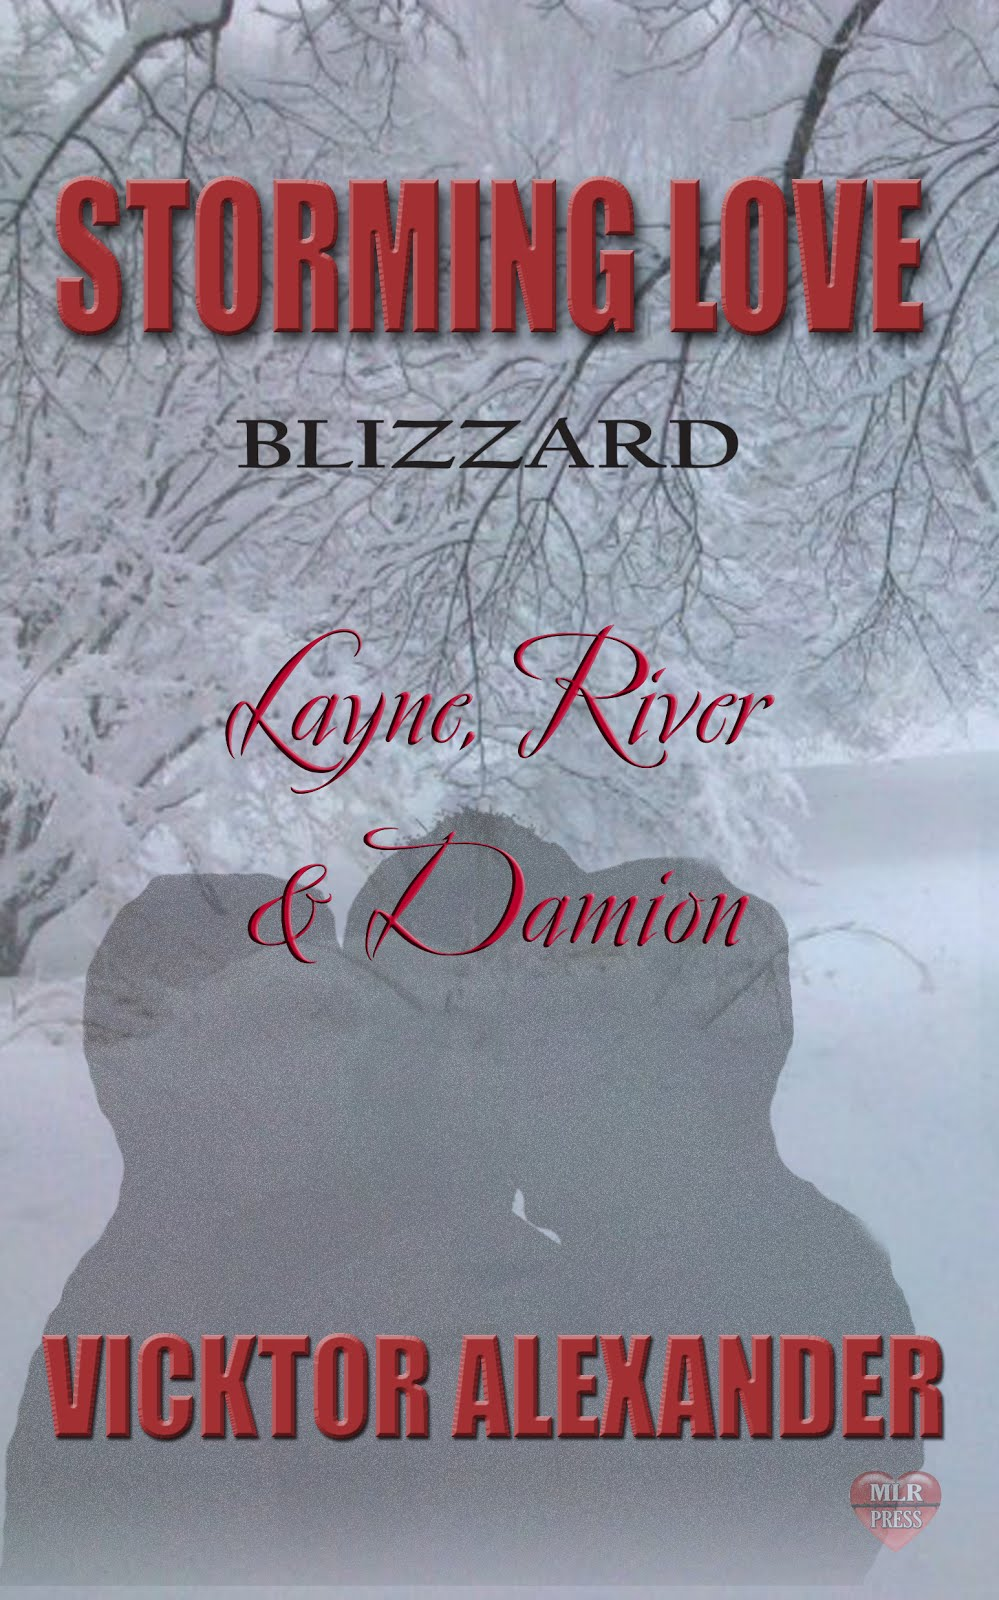 Storming Love: Blizzard: Layne, River, & Damion